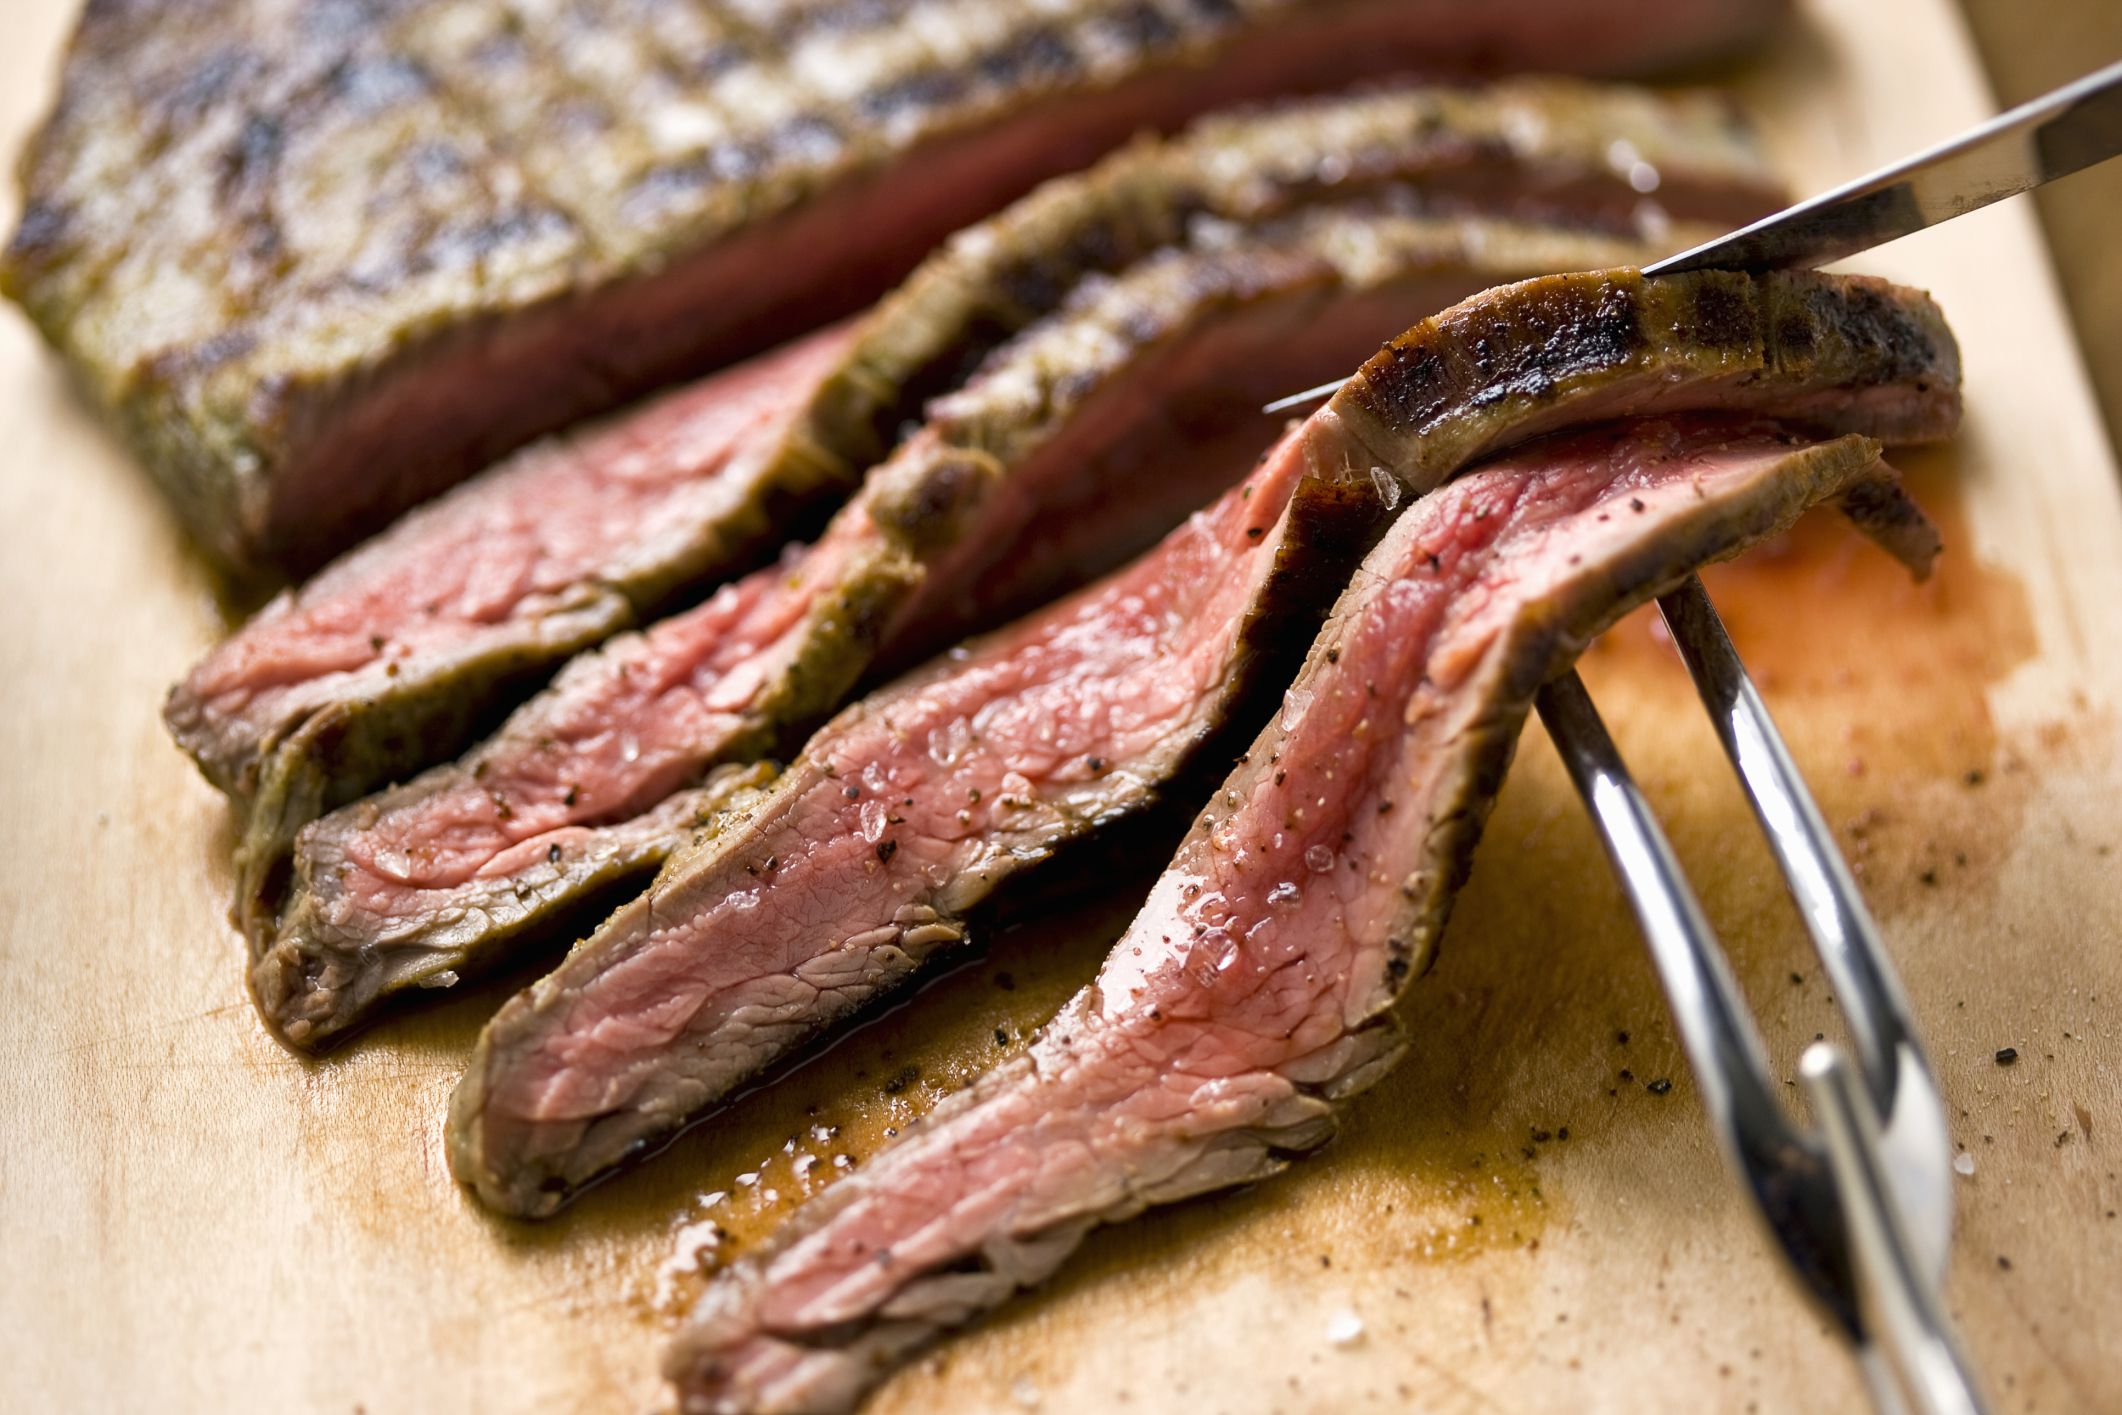 health and nutrition facts for steak